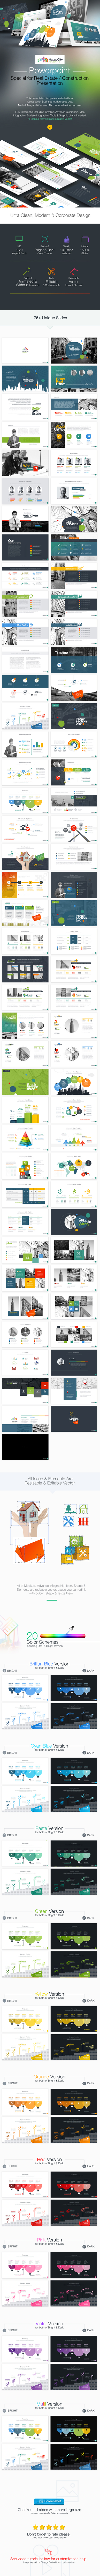 construction powerpoint presentation templates gallery - templates, Presentation templates